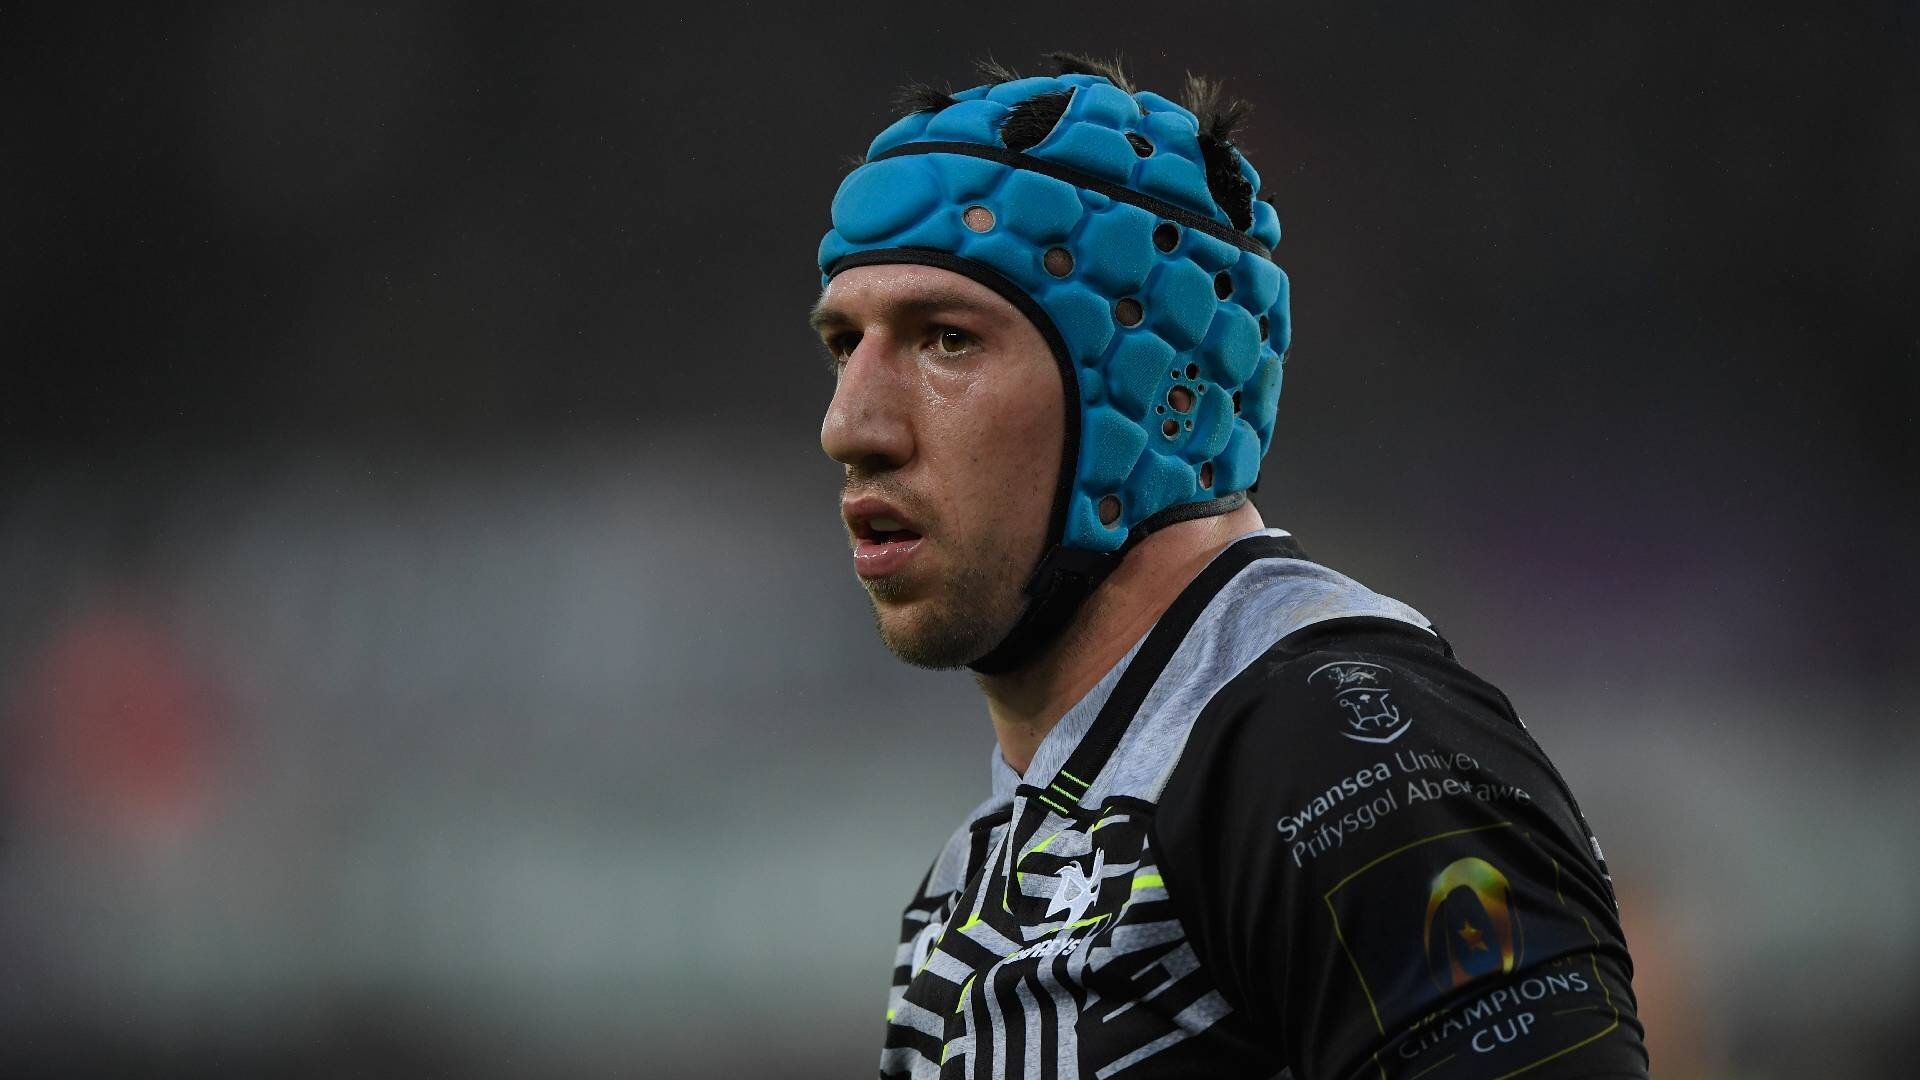 Announcement imminent on Justin Tipuric's future after being linked with numerous high-profile clubs